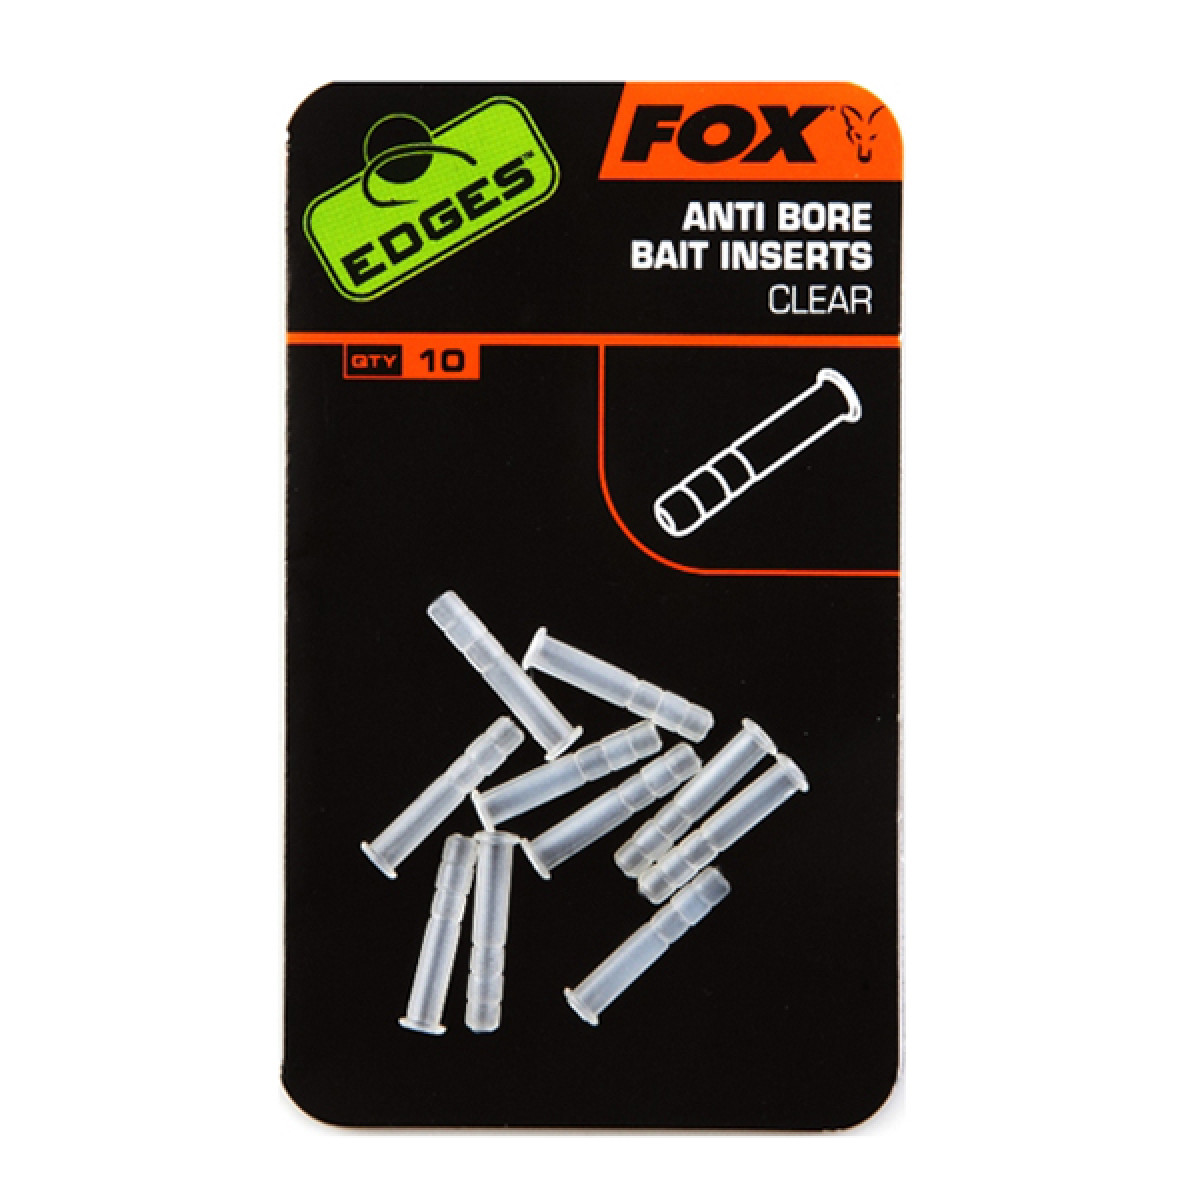 Anti Bore Bait Inserts